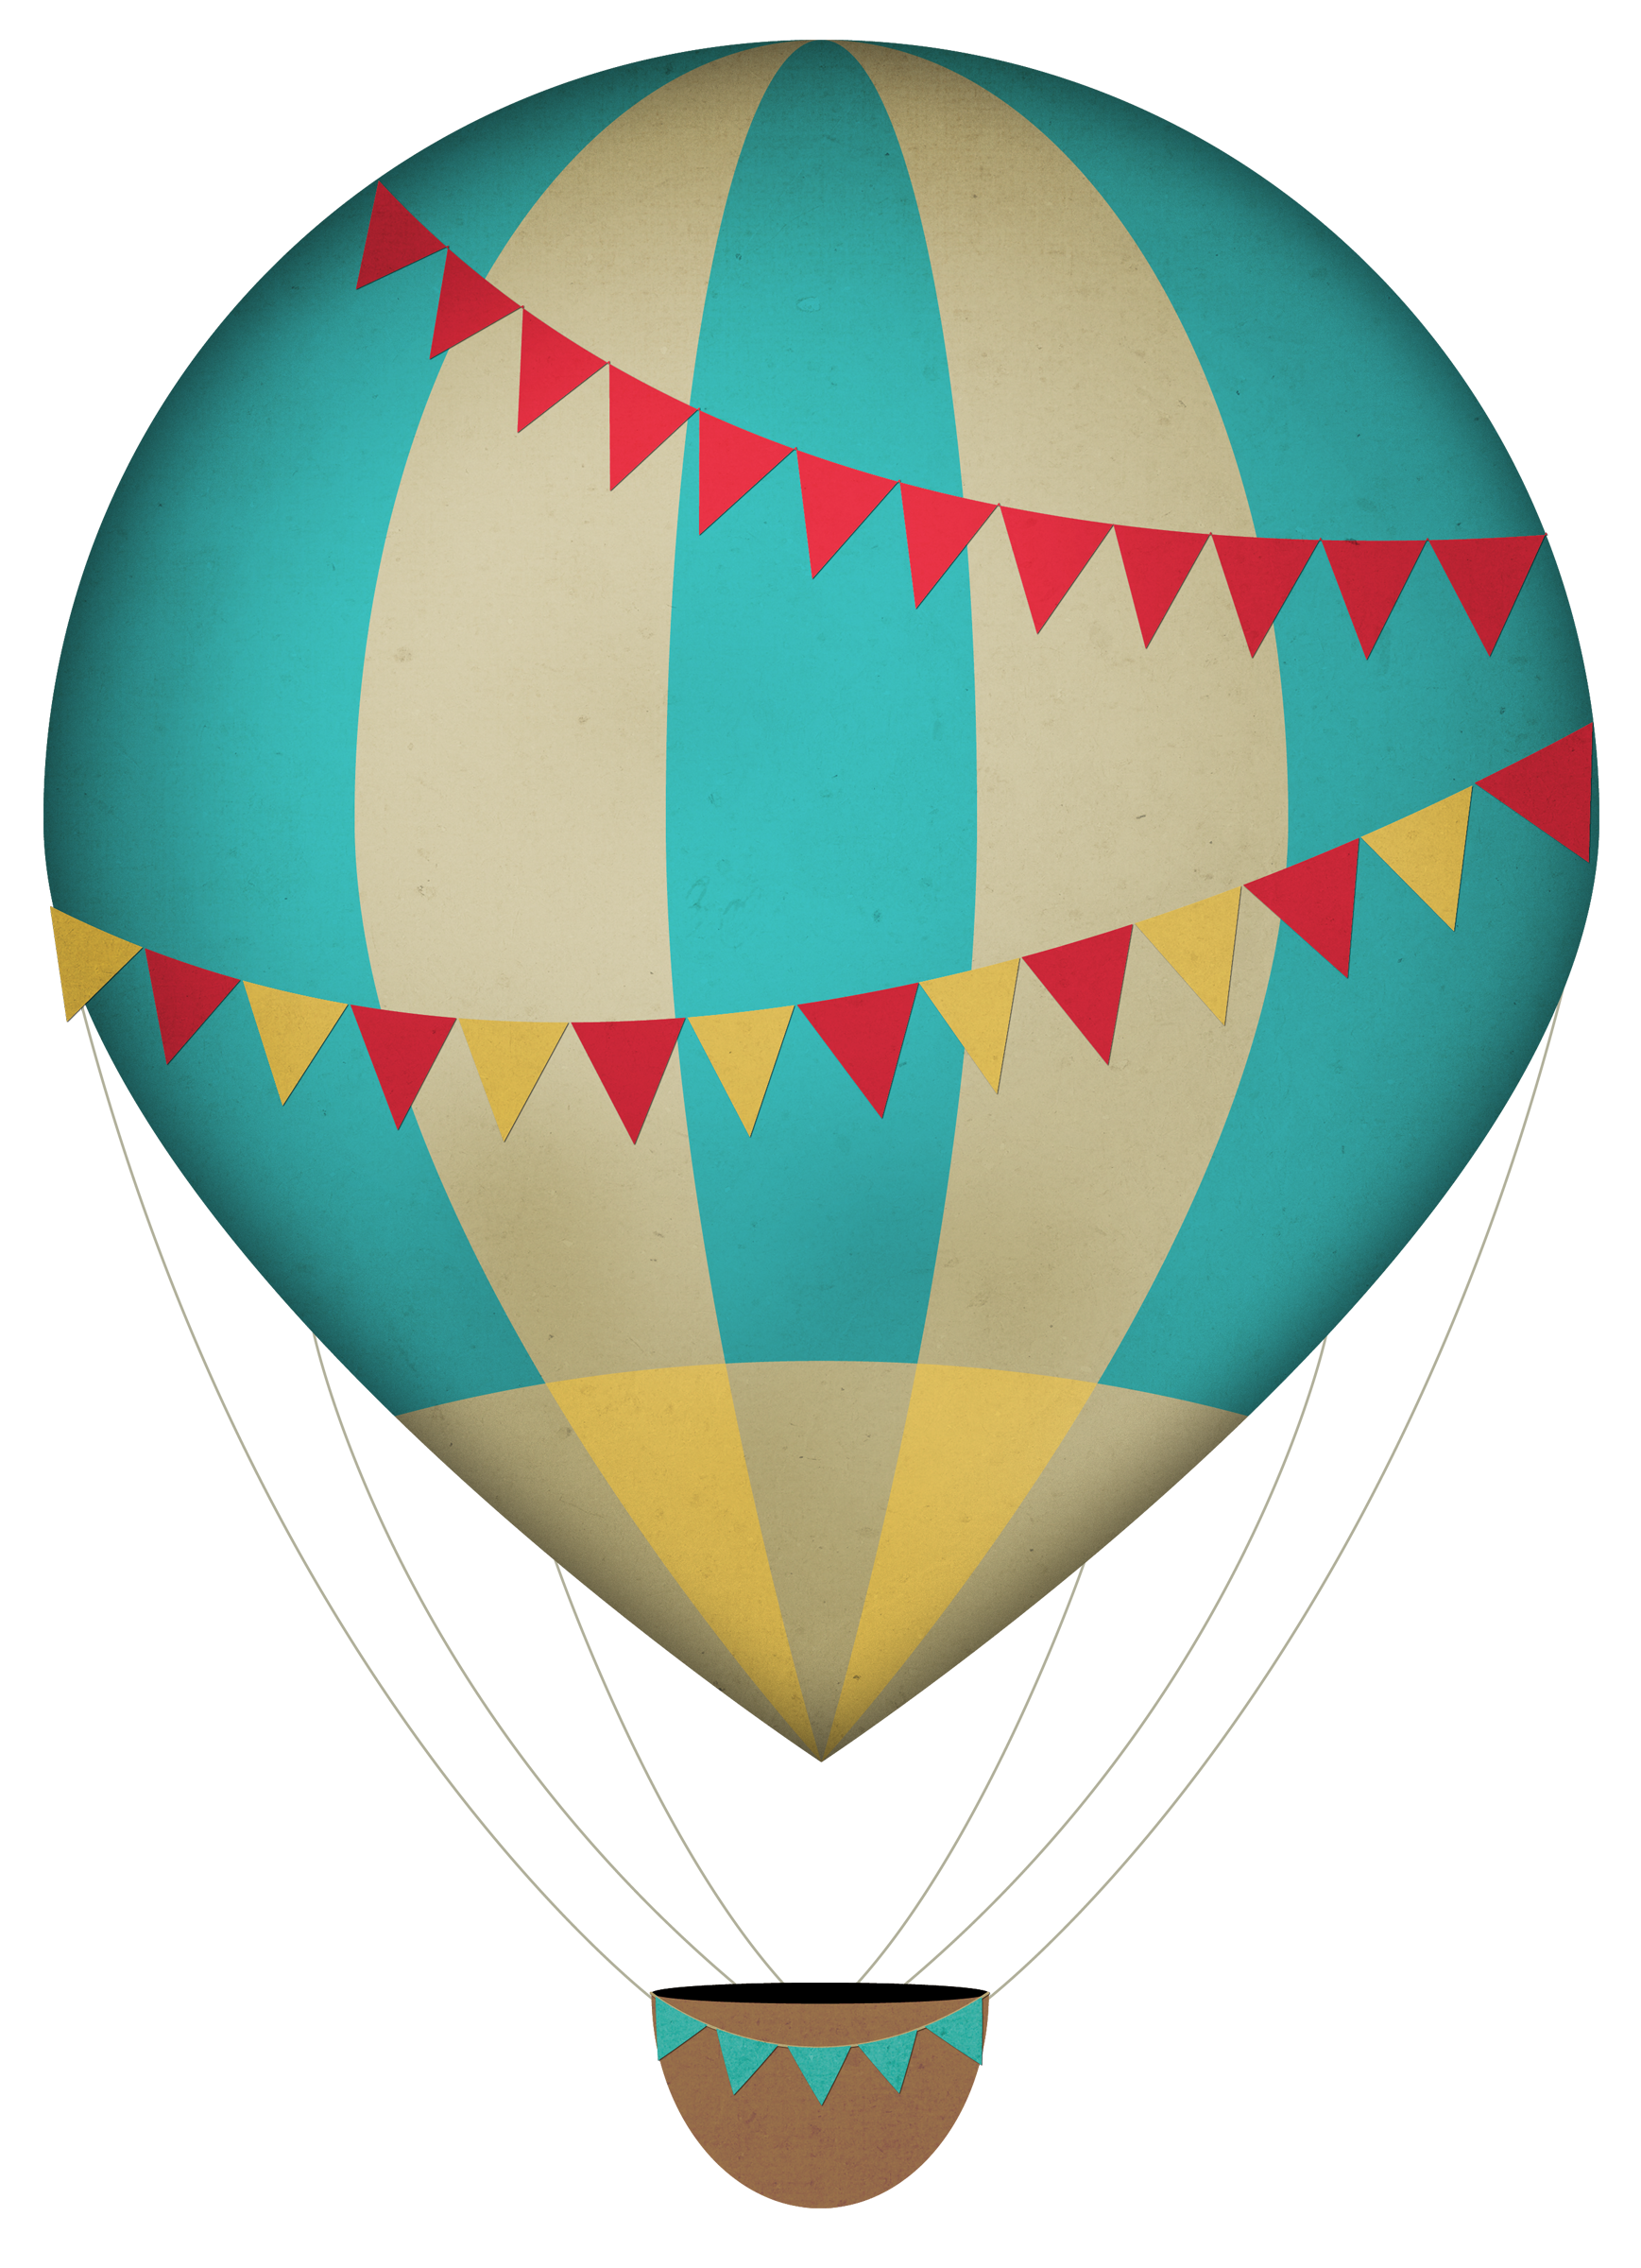 Png Format Images Of Air Balloon Drawing